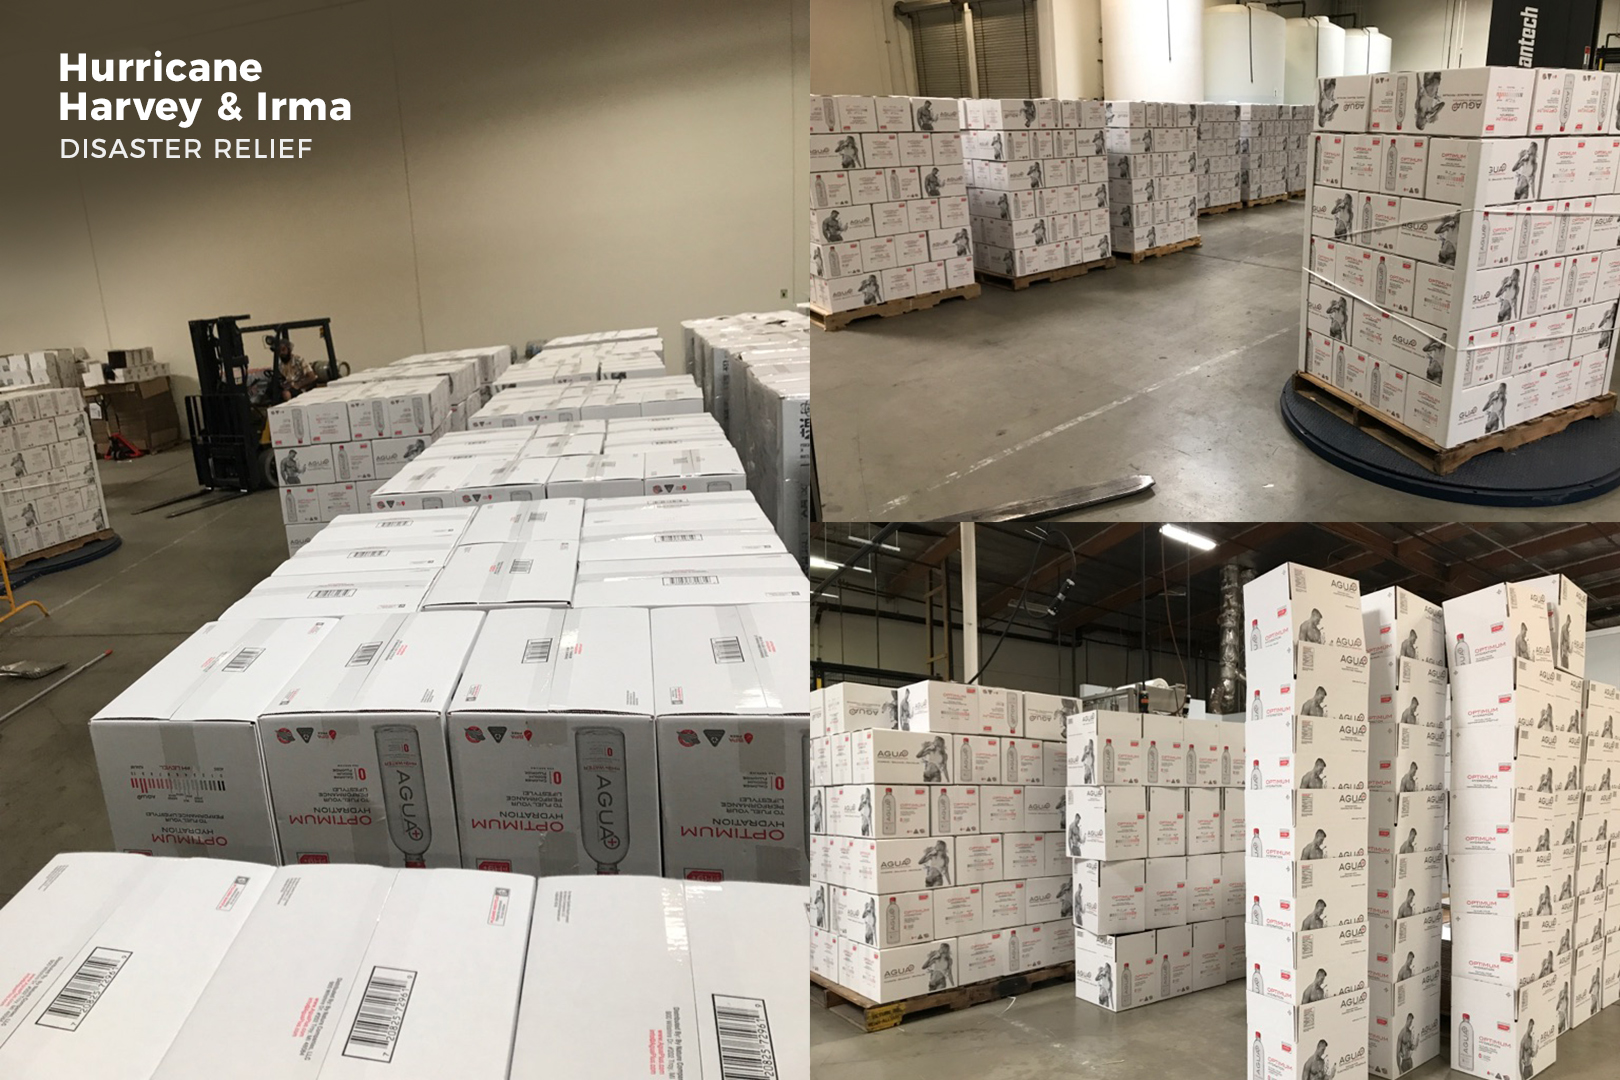 Agua Plus donted to Hurricane Harvey and Irma relief Efforts